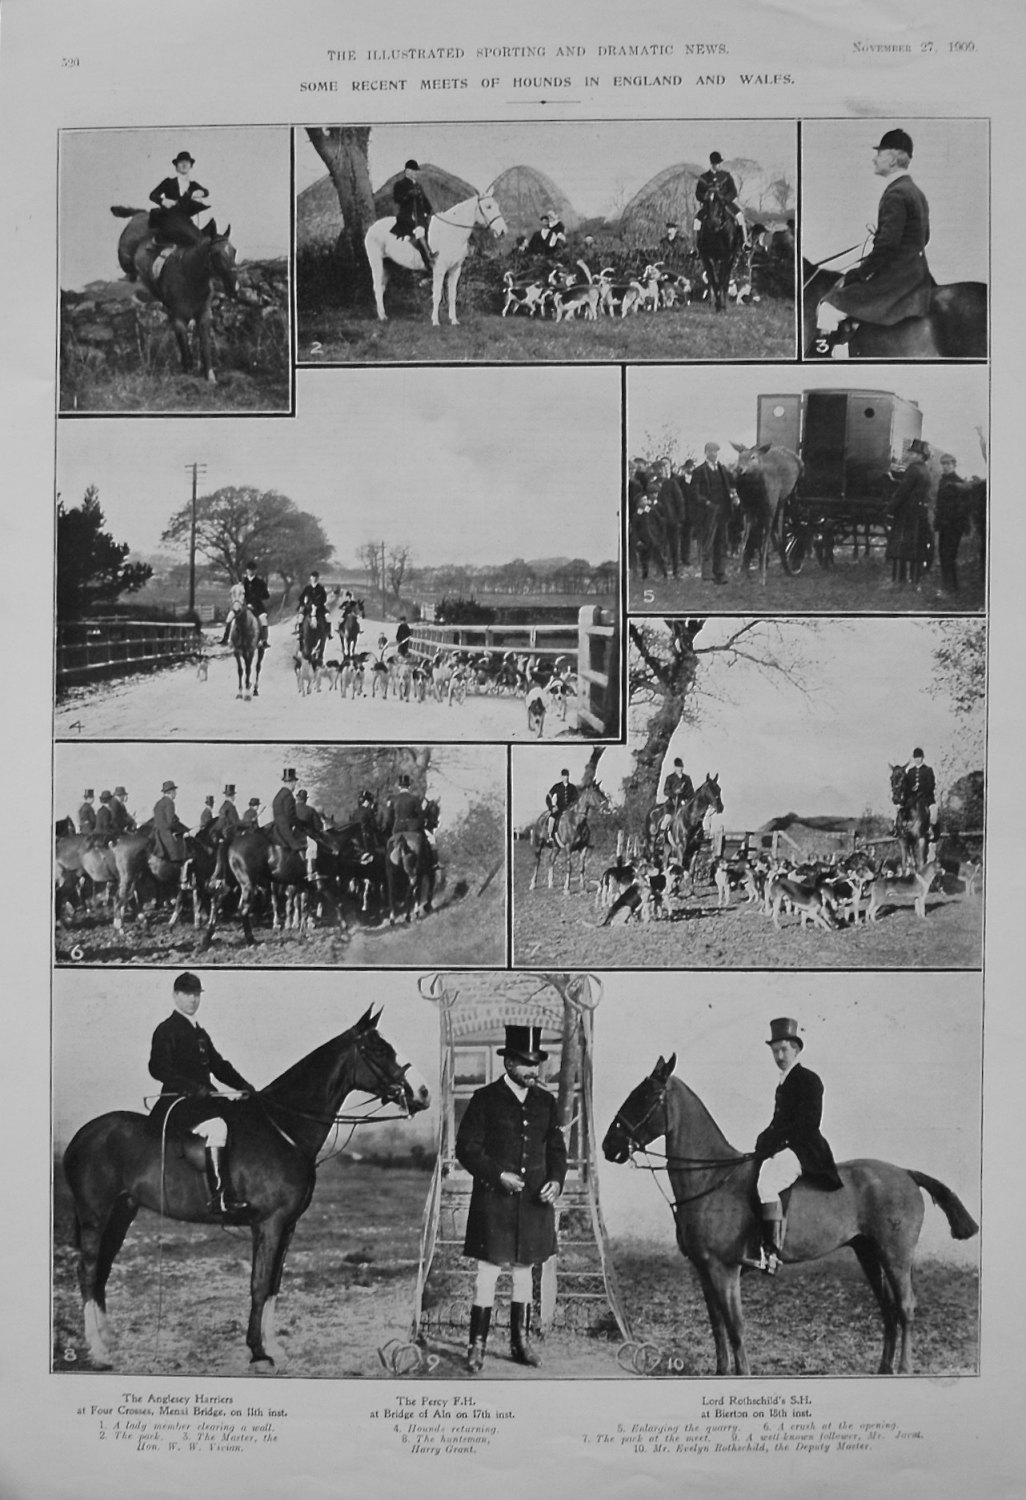 Some Recent Meets of Hounds in England and Wales. 1909